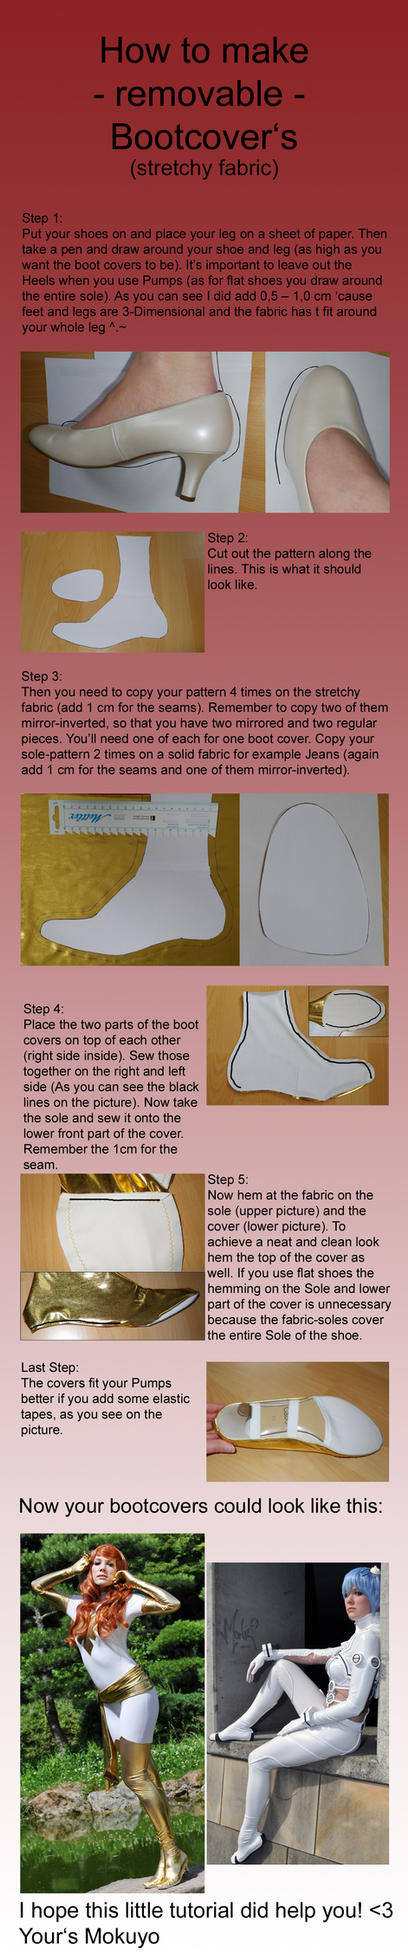 alysontabbitha 330 28 how to make bootcovers part 2 of 2 removable by mokuyo